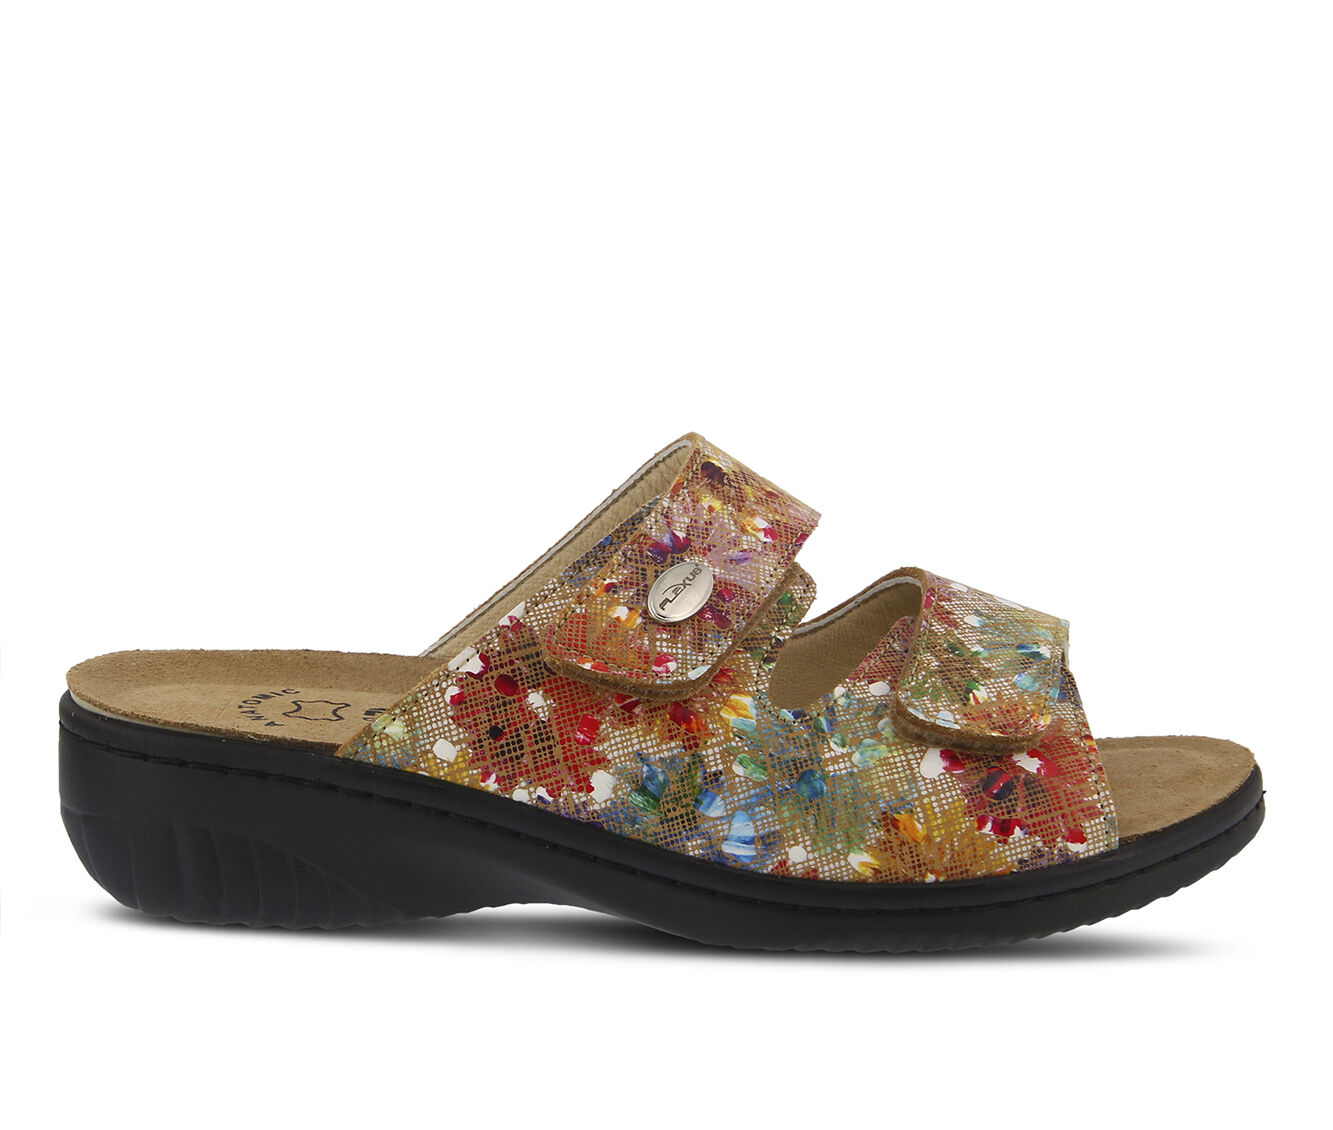 Women's FLEXUS Bellasa Sandals Beige Multi